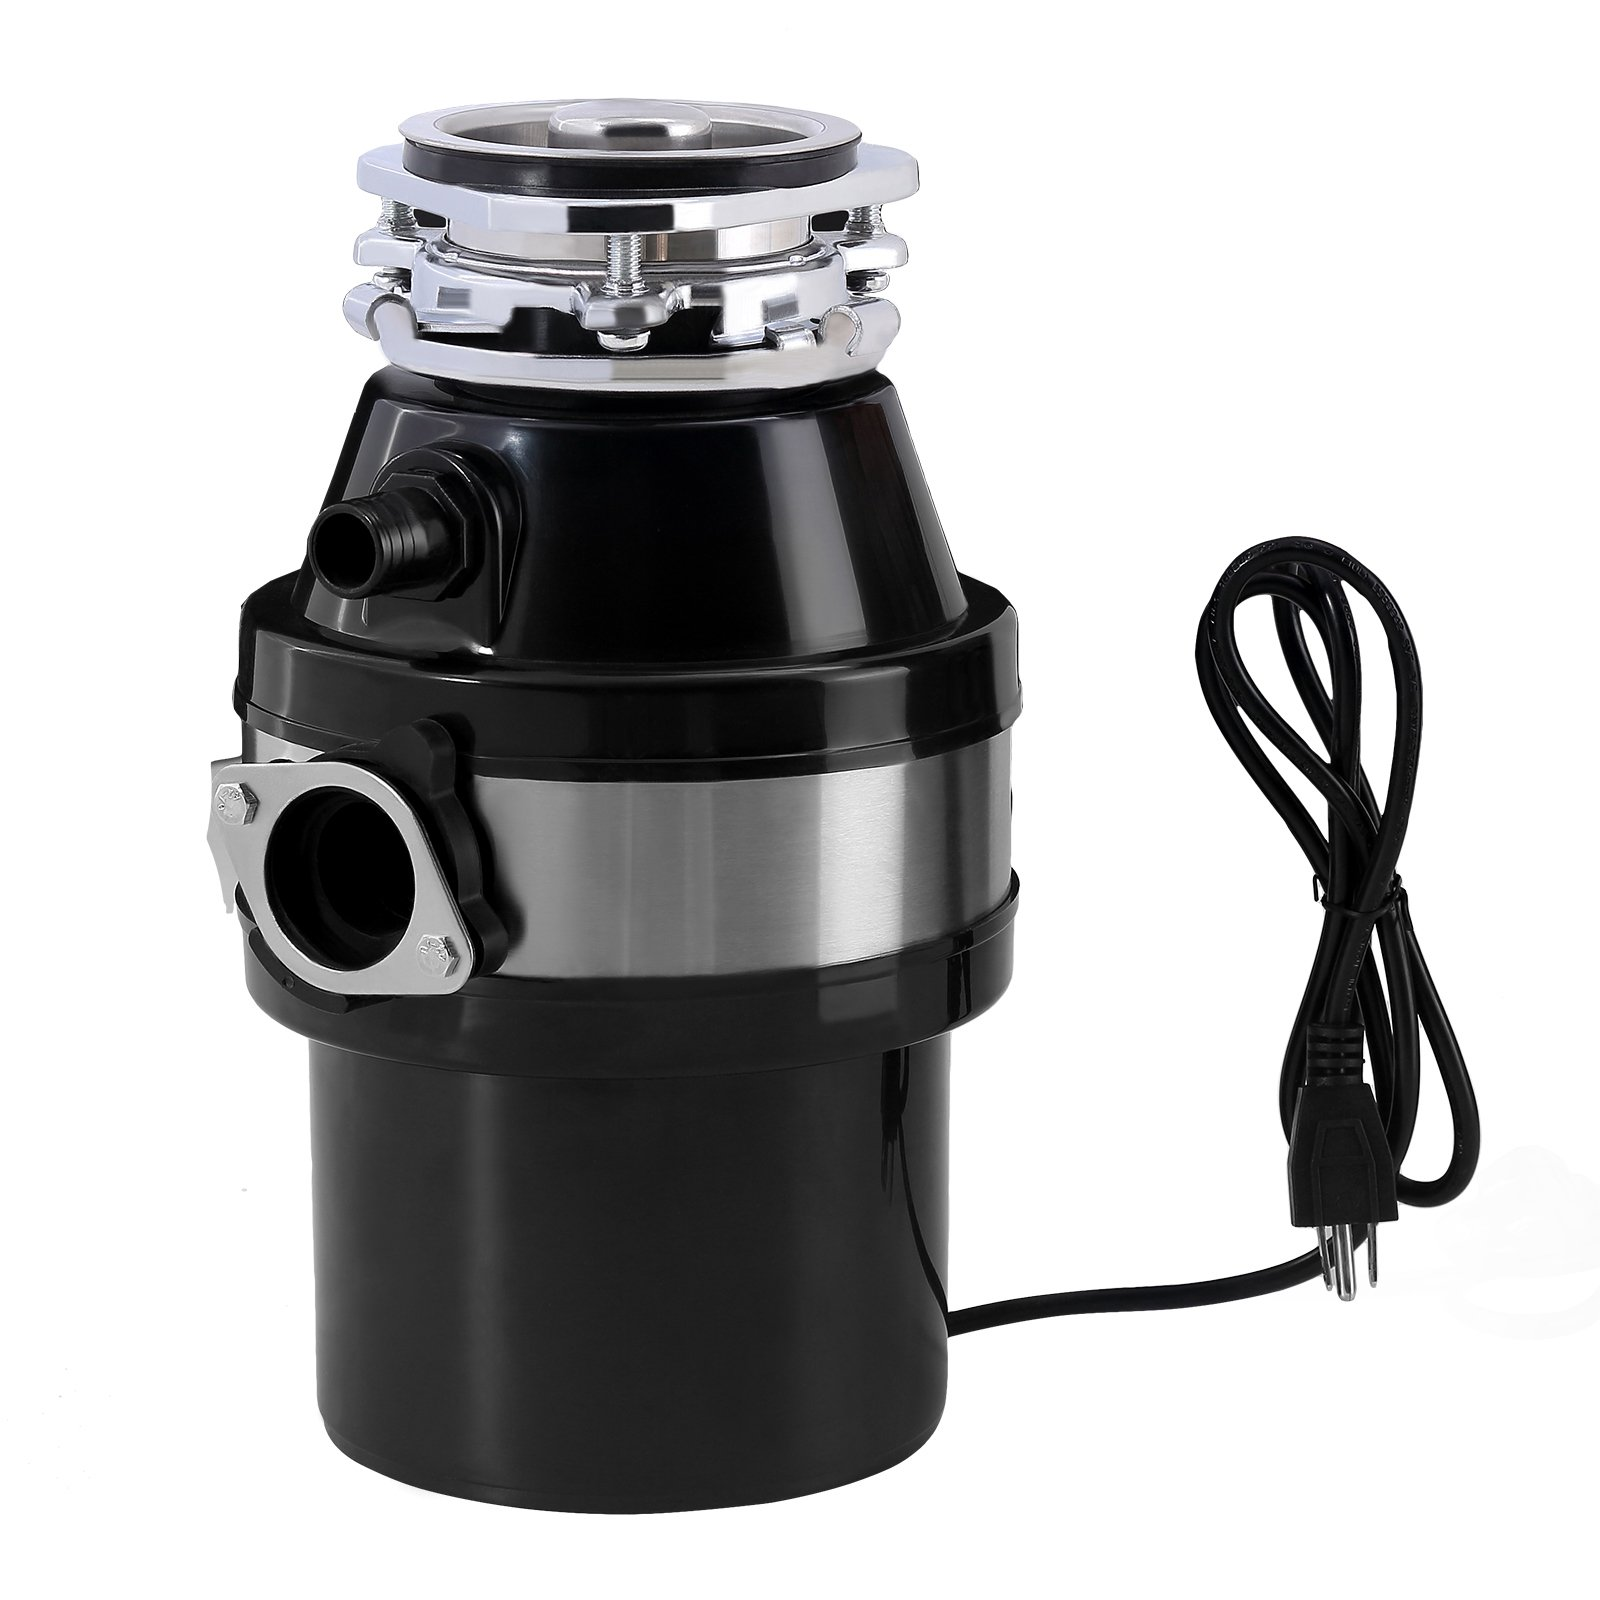 KUPPET Garbage Disposal 1 HP Household Food Waste Garbage Disposal Continuous Feed with Power Cord 3 Level of Grinding 2600 RPM Black